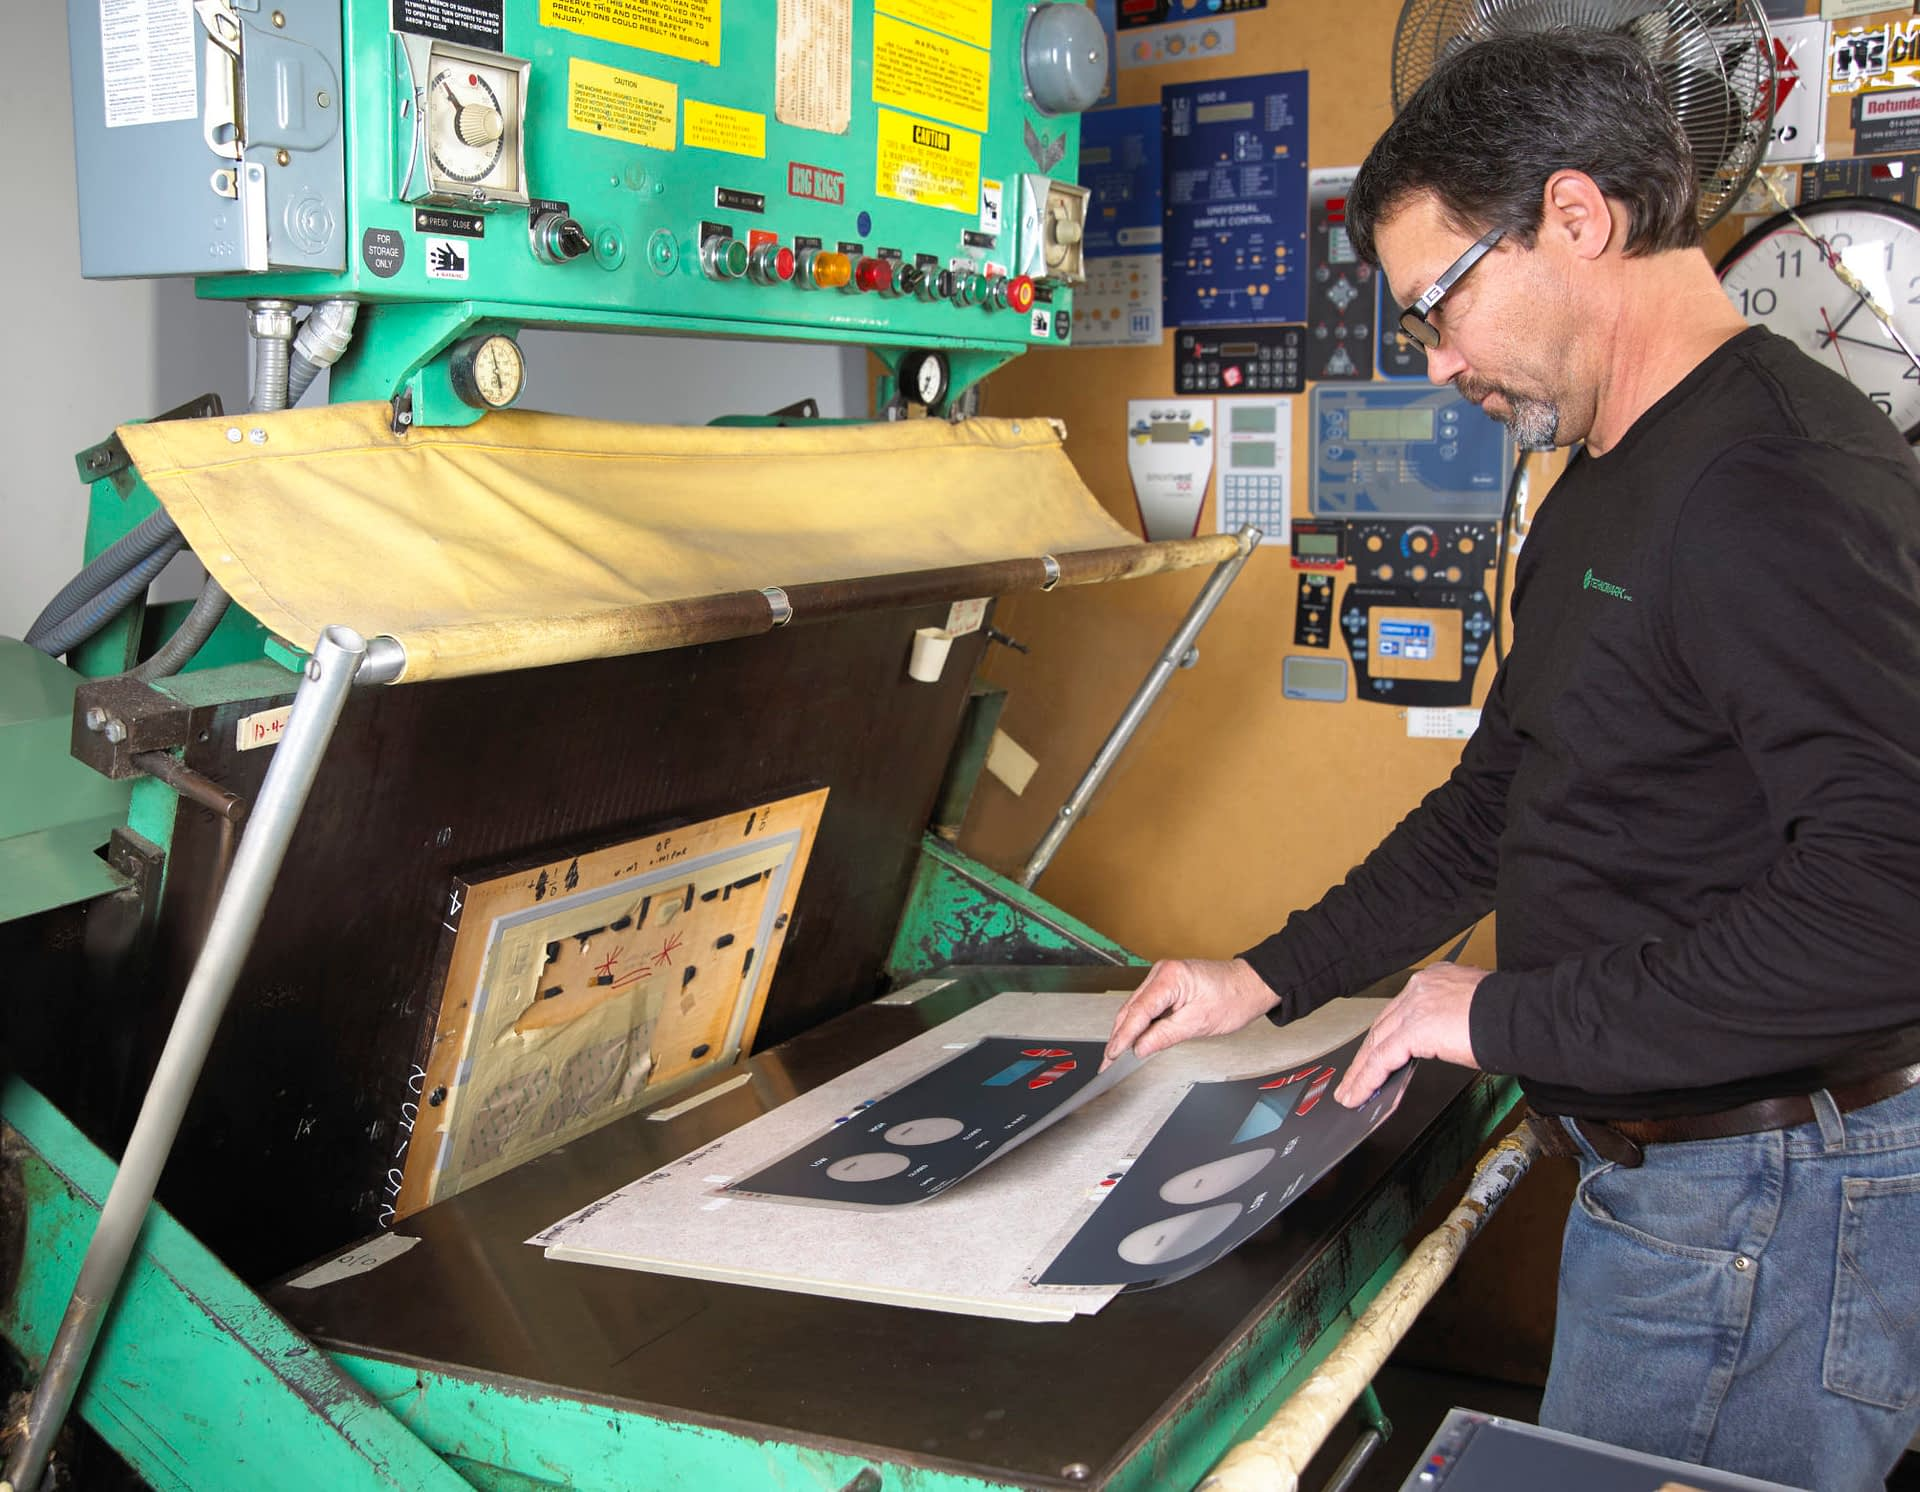 Technician using die cutter to cut a graphic overlay